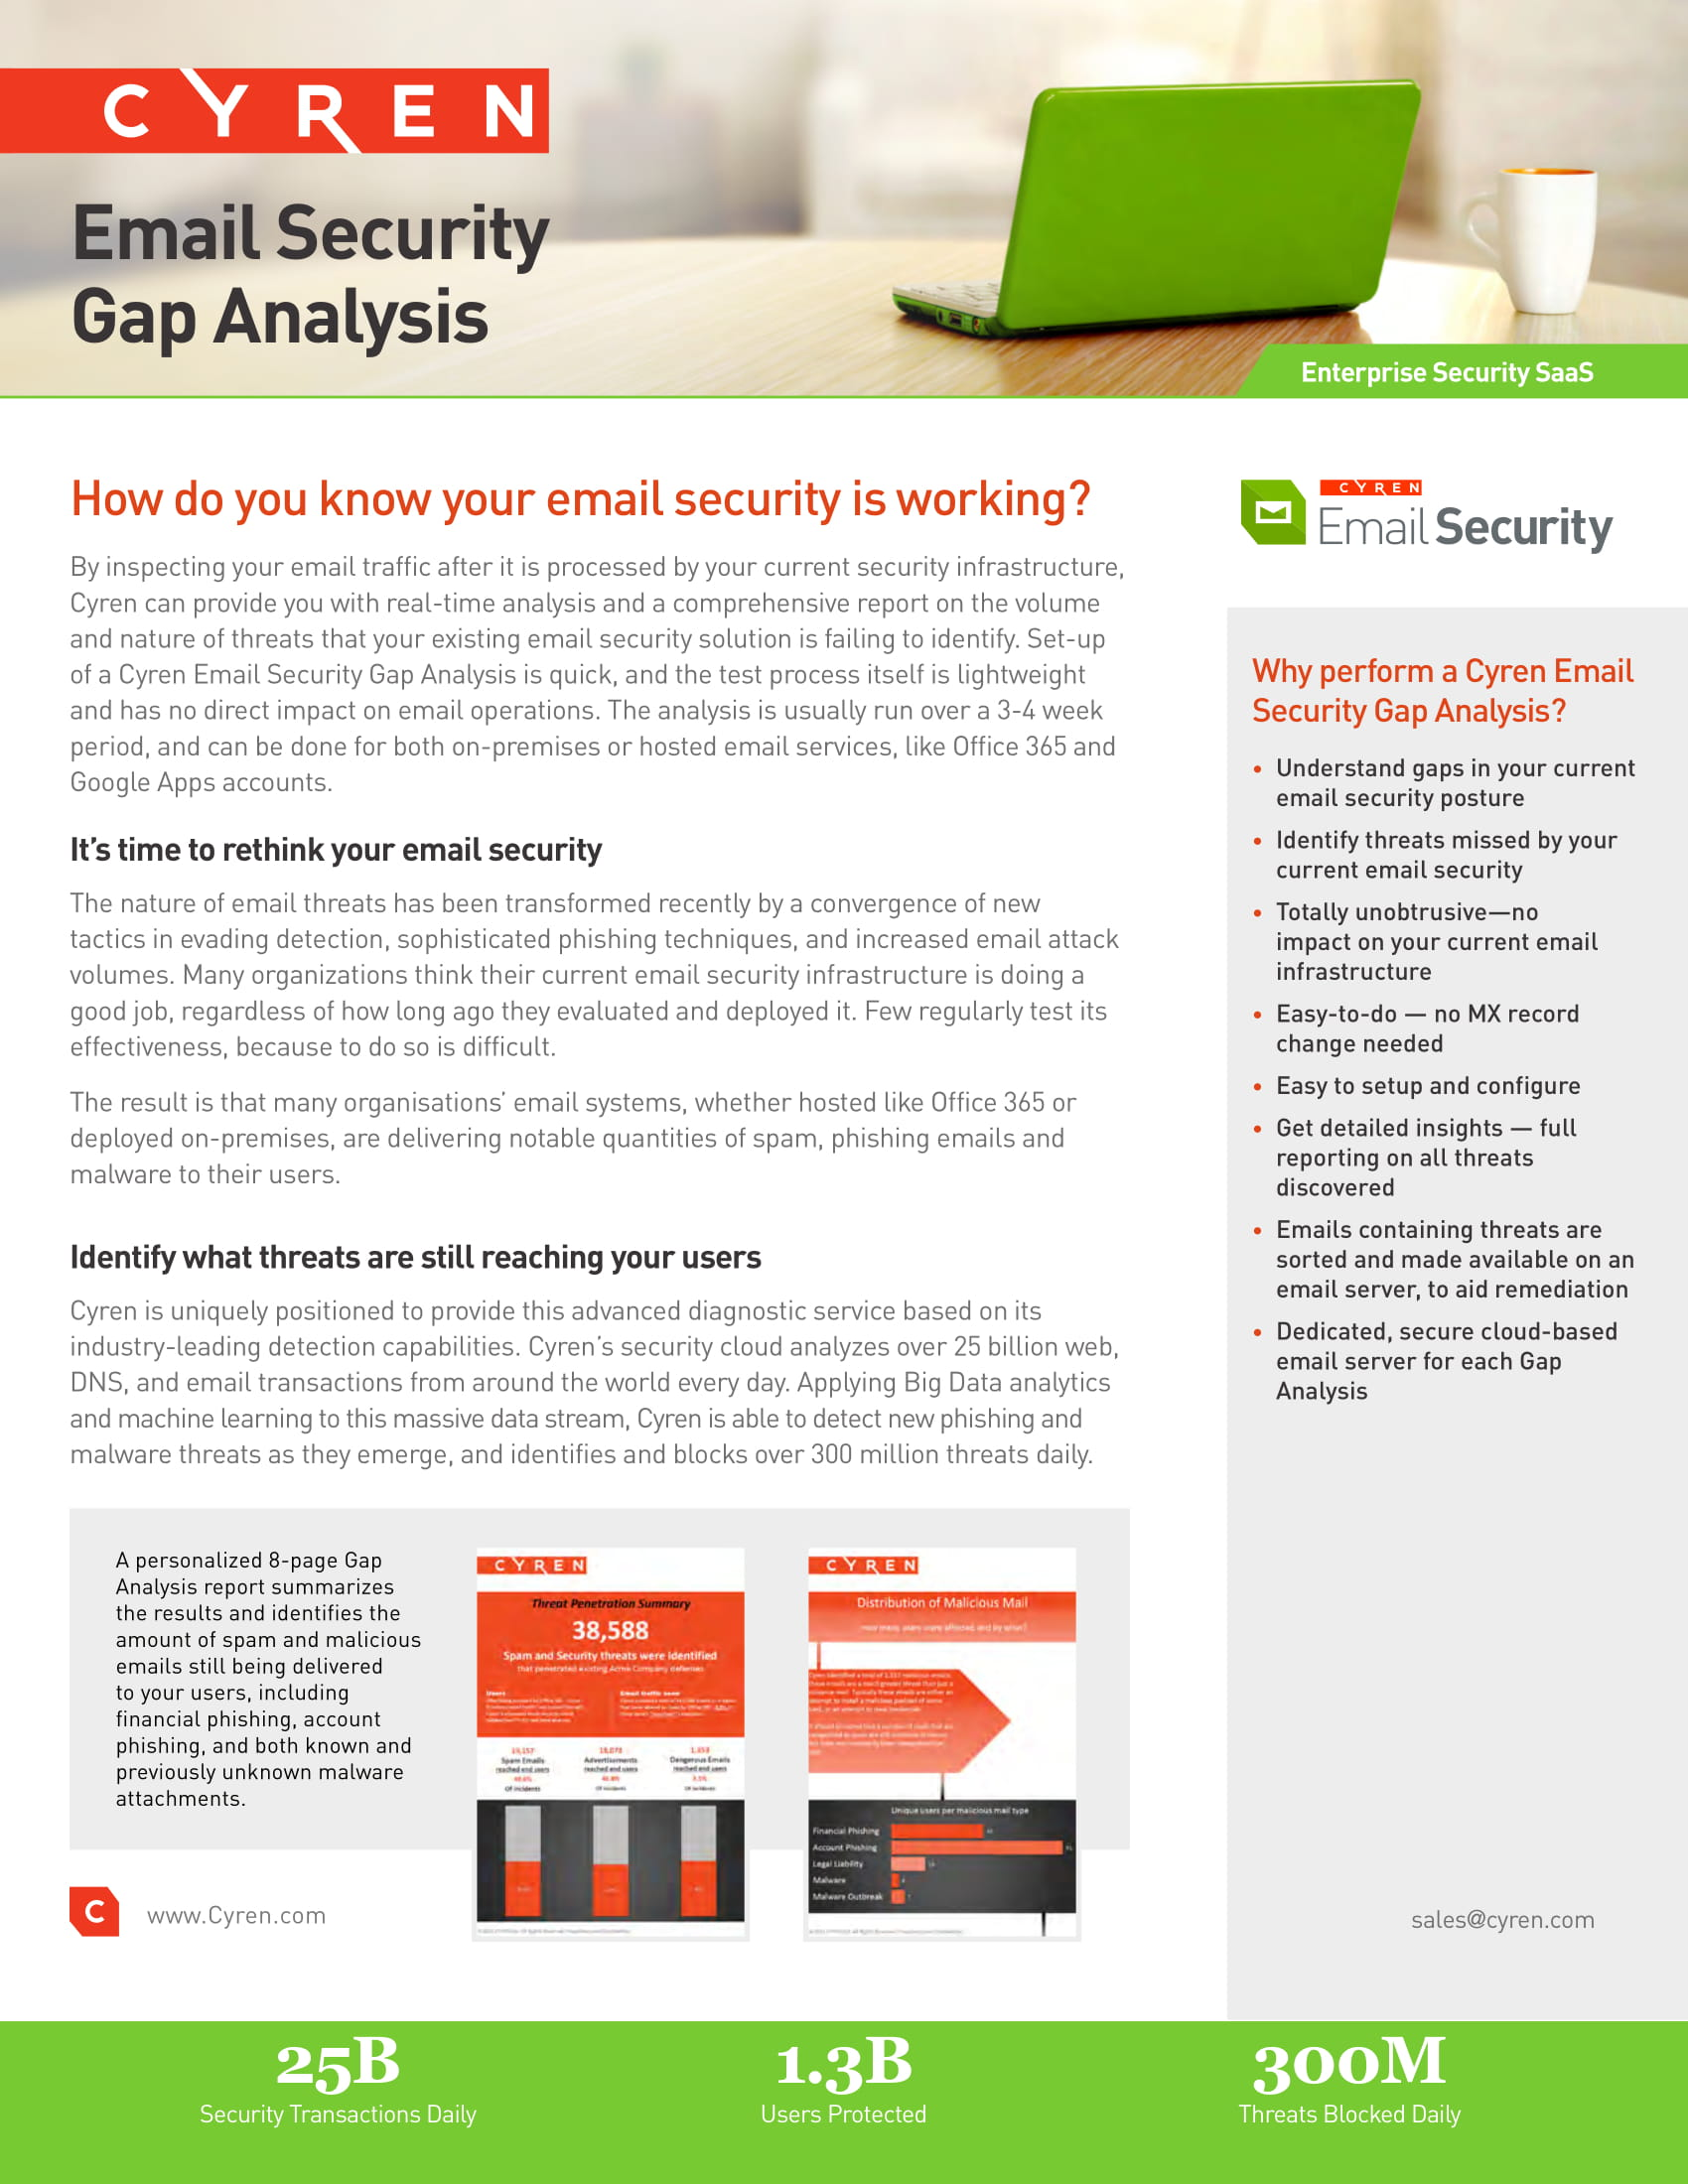 cyren email security gap analysis datasheet